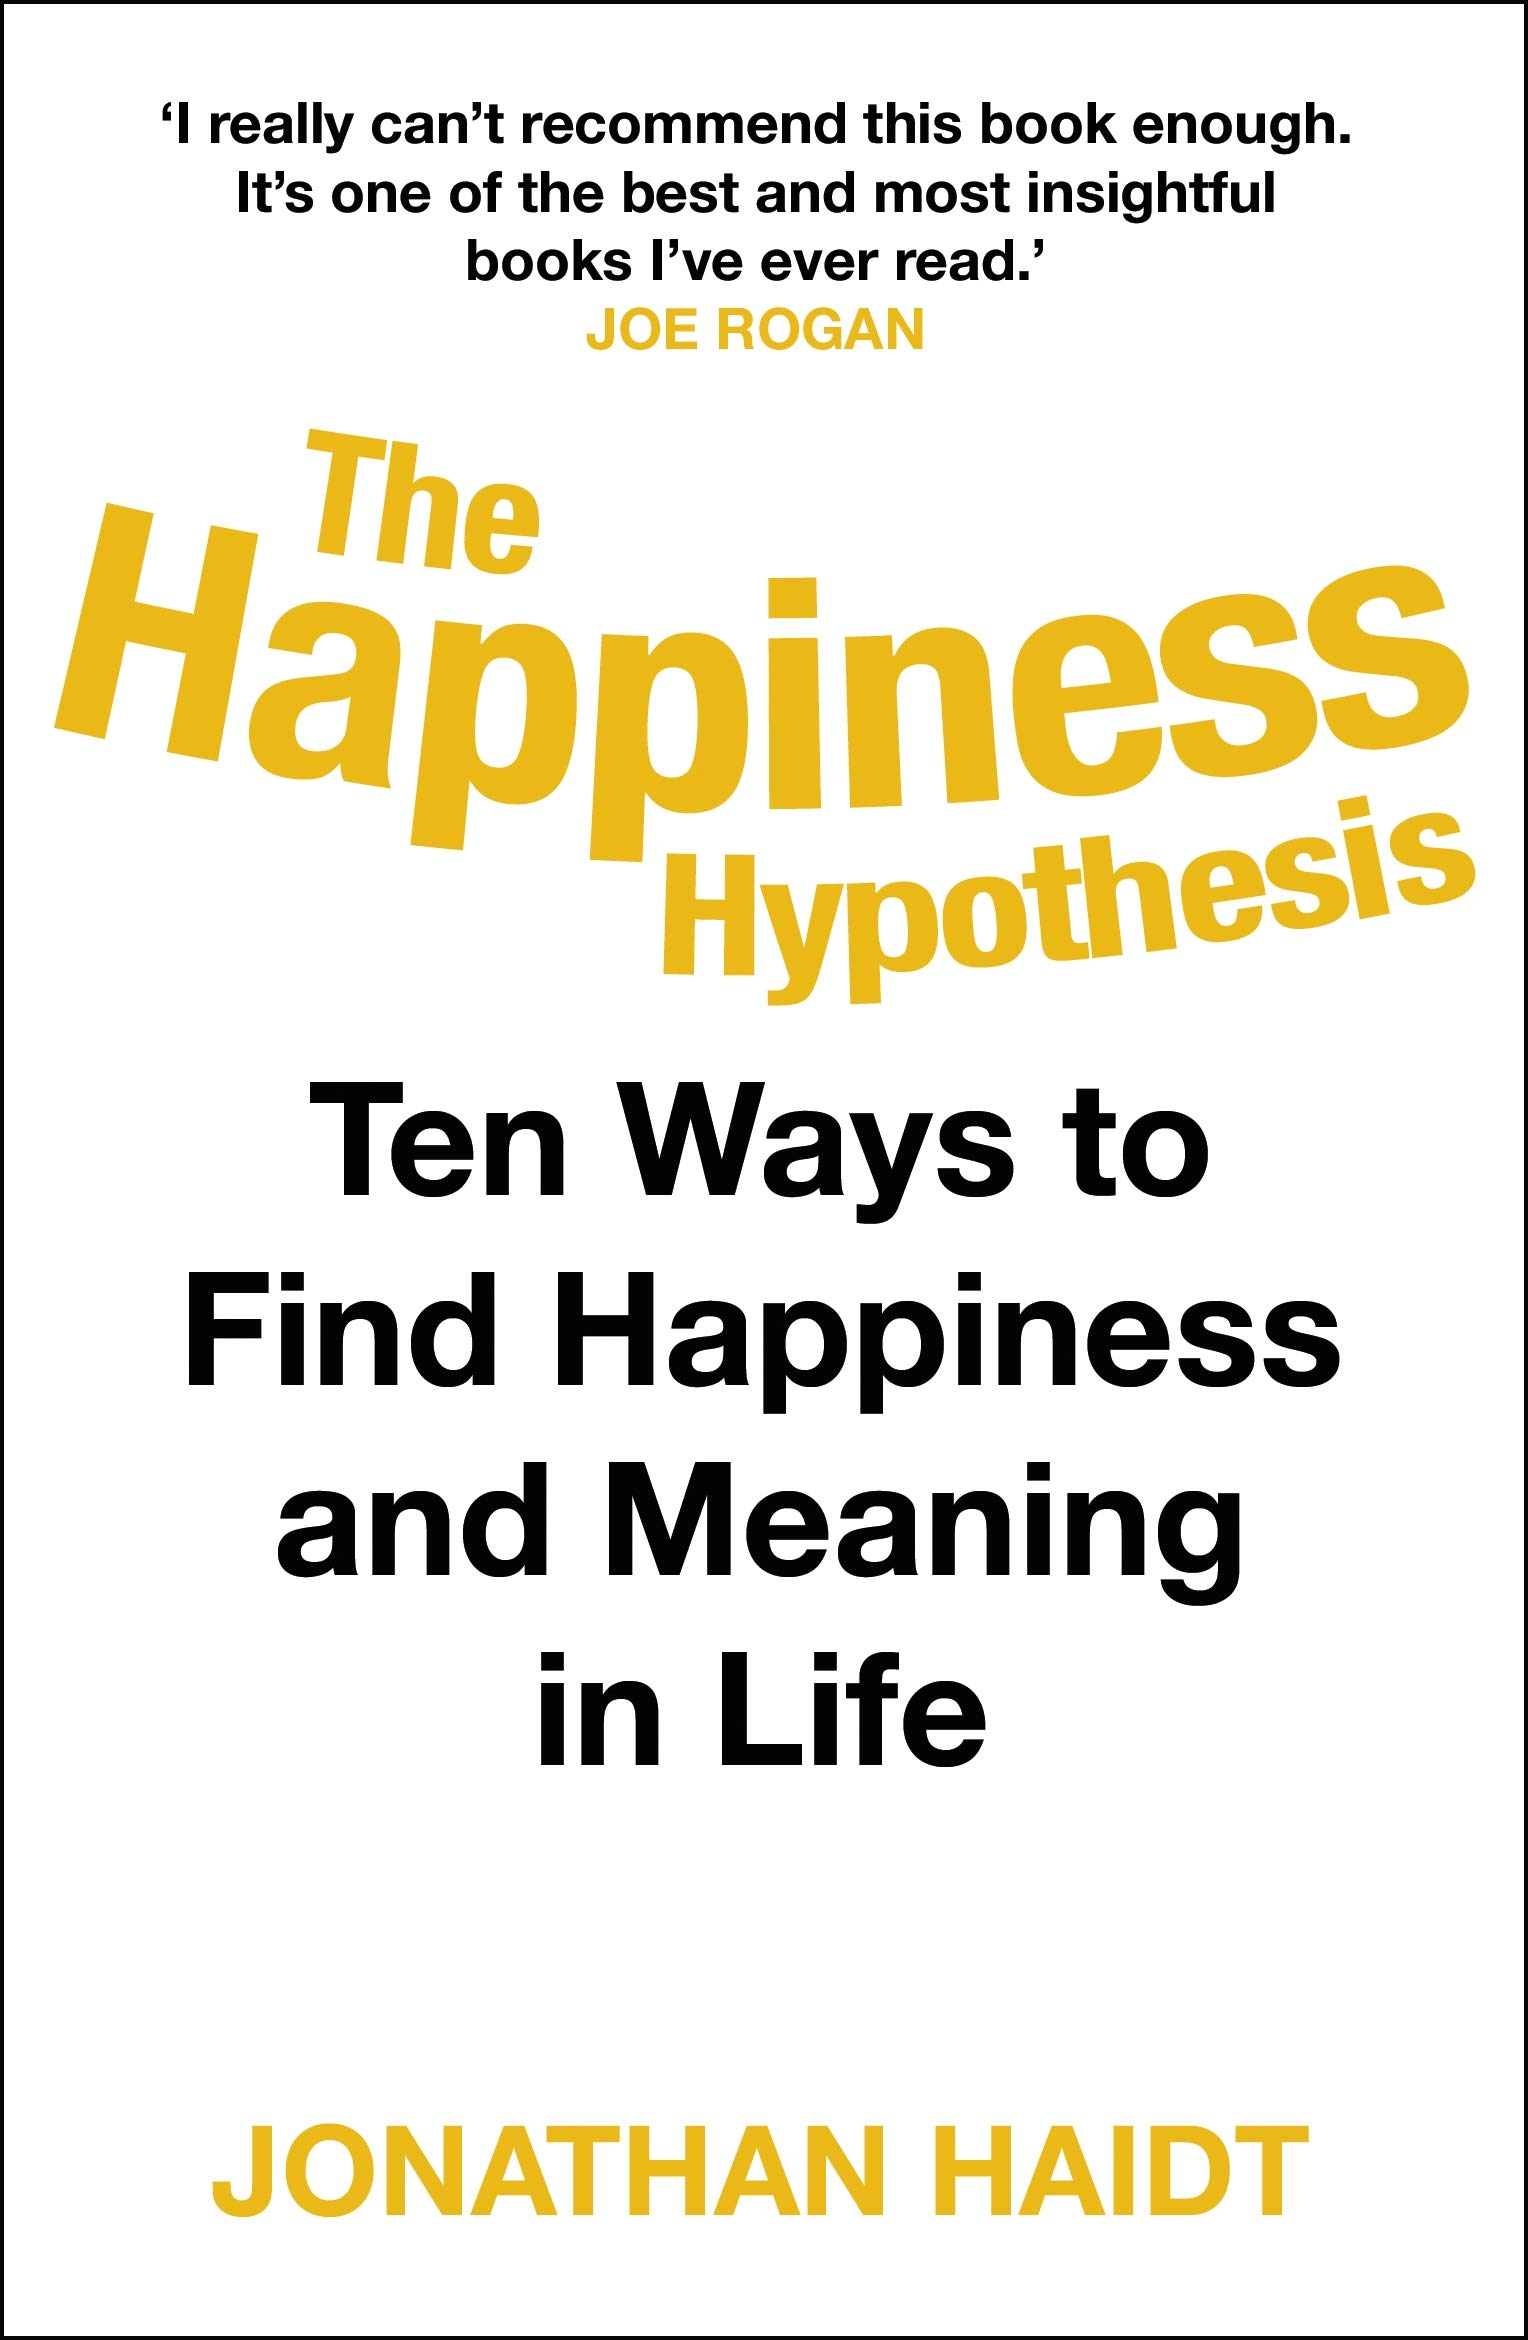 THE HAPPINESS HYPOTHESIS TEN WAYS TO FIND HAPPINESS AND MEANING IN LIFE PB